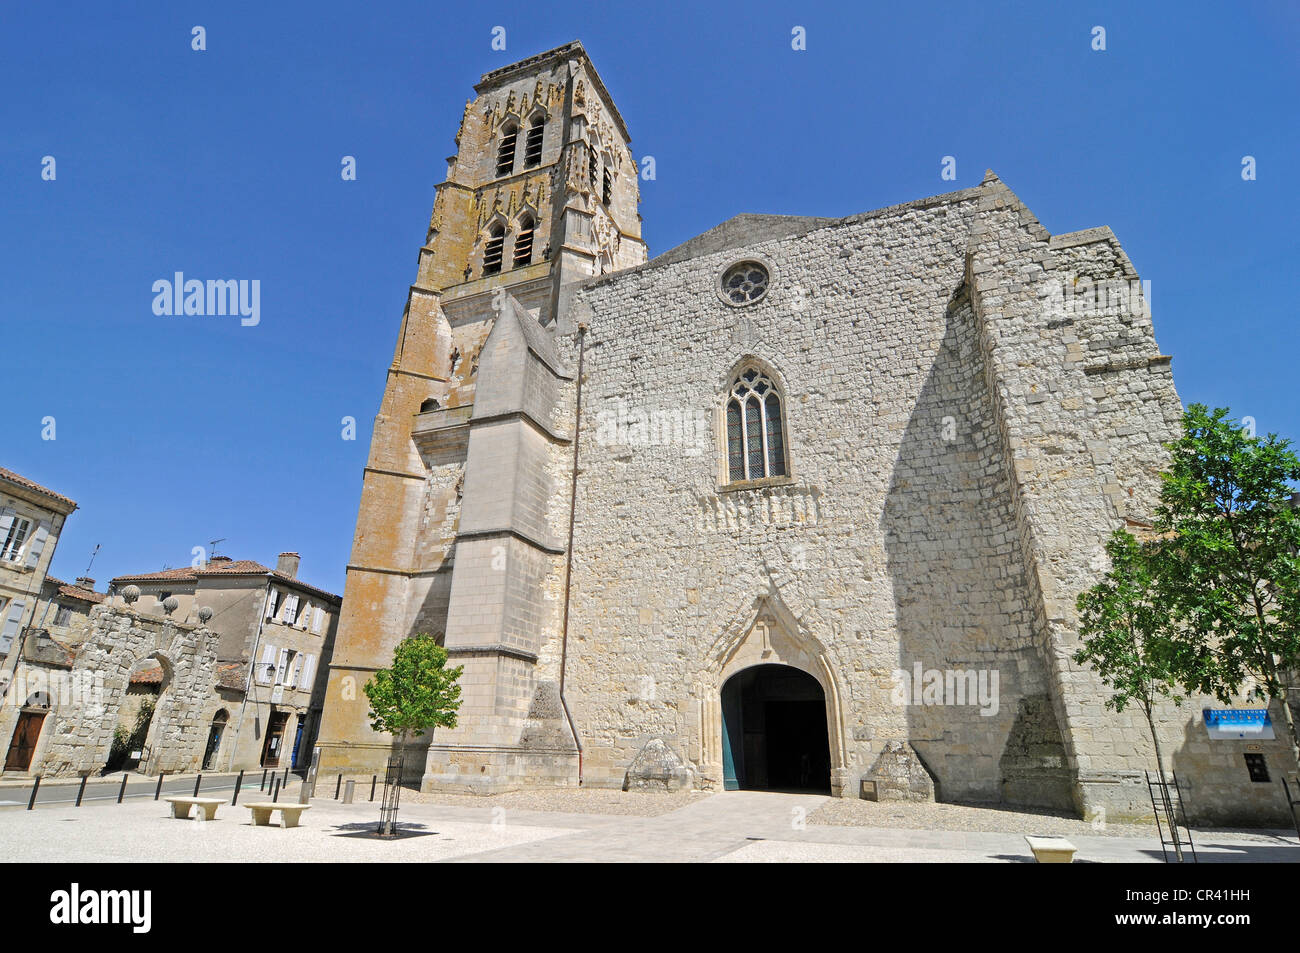 Cathedral, Via Podiensis or Chemin de St-Jacques or French Way of St. James, UNESCO World Heritage Site, Lectoure - Stock Image